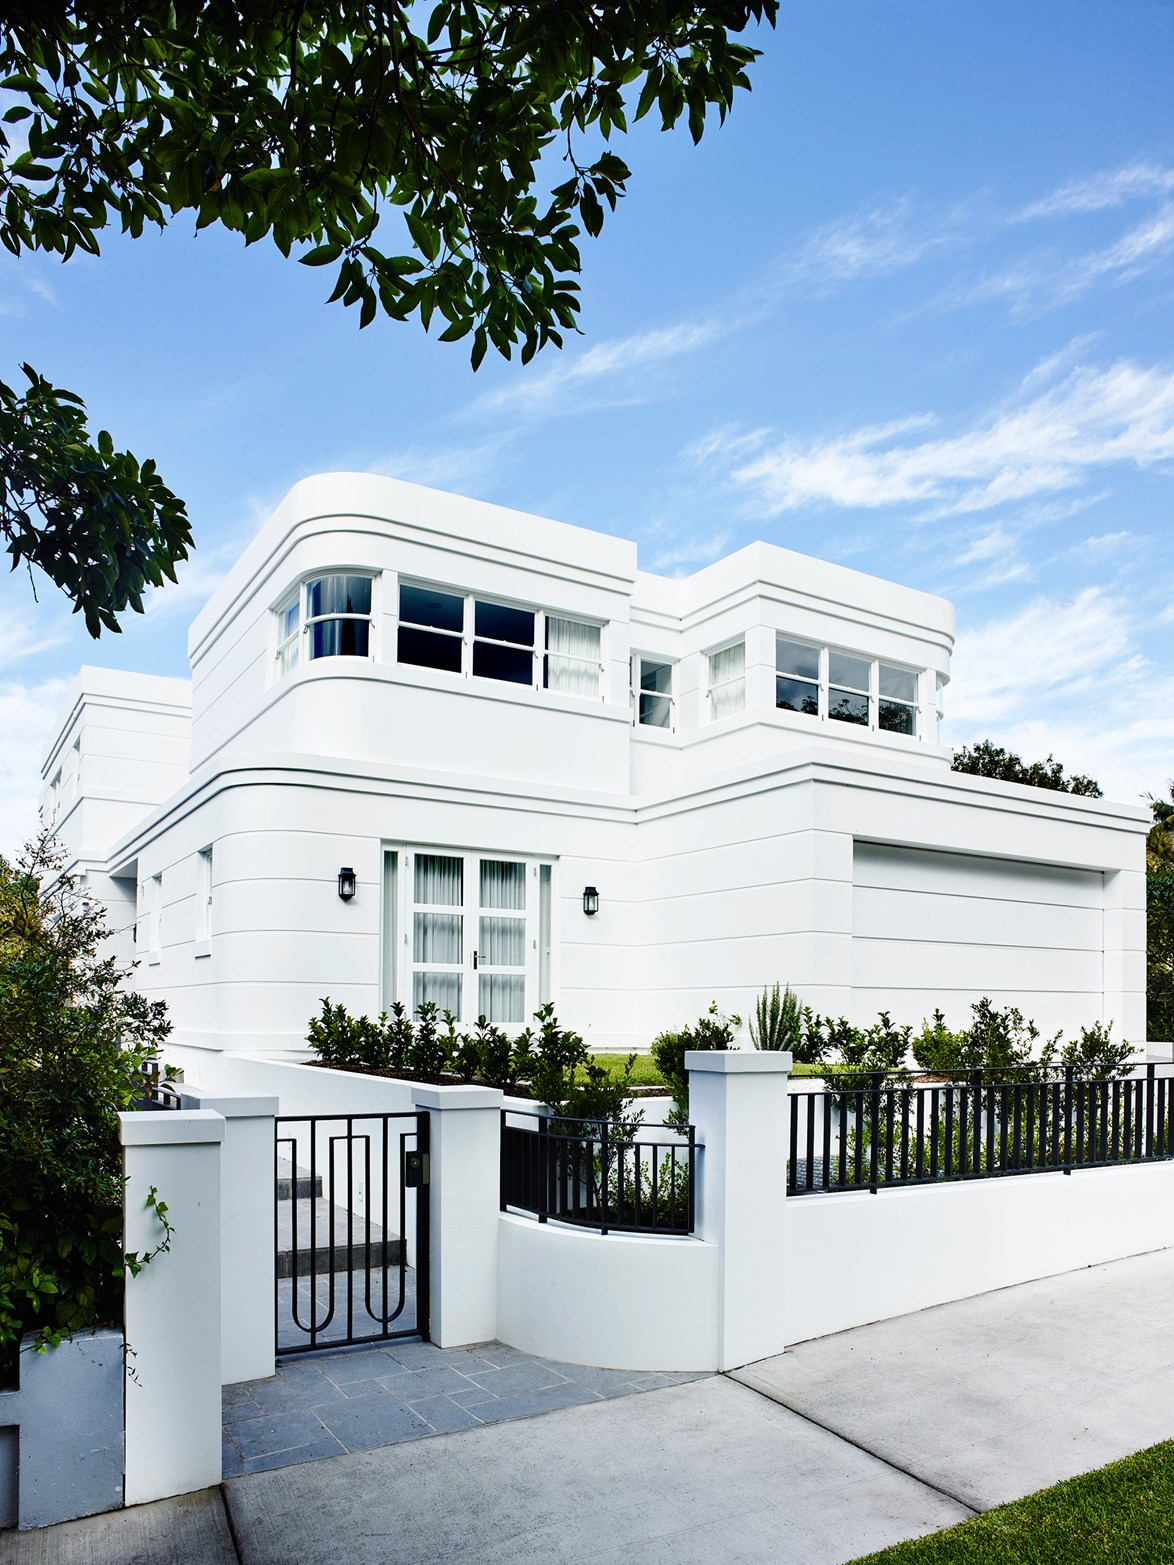 """This home in Sydney's eastern suburbs is a classic example of late art deco architecture, known as """"streamline moderne""""."""